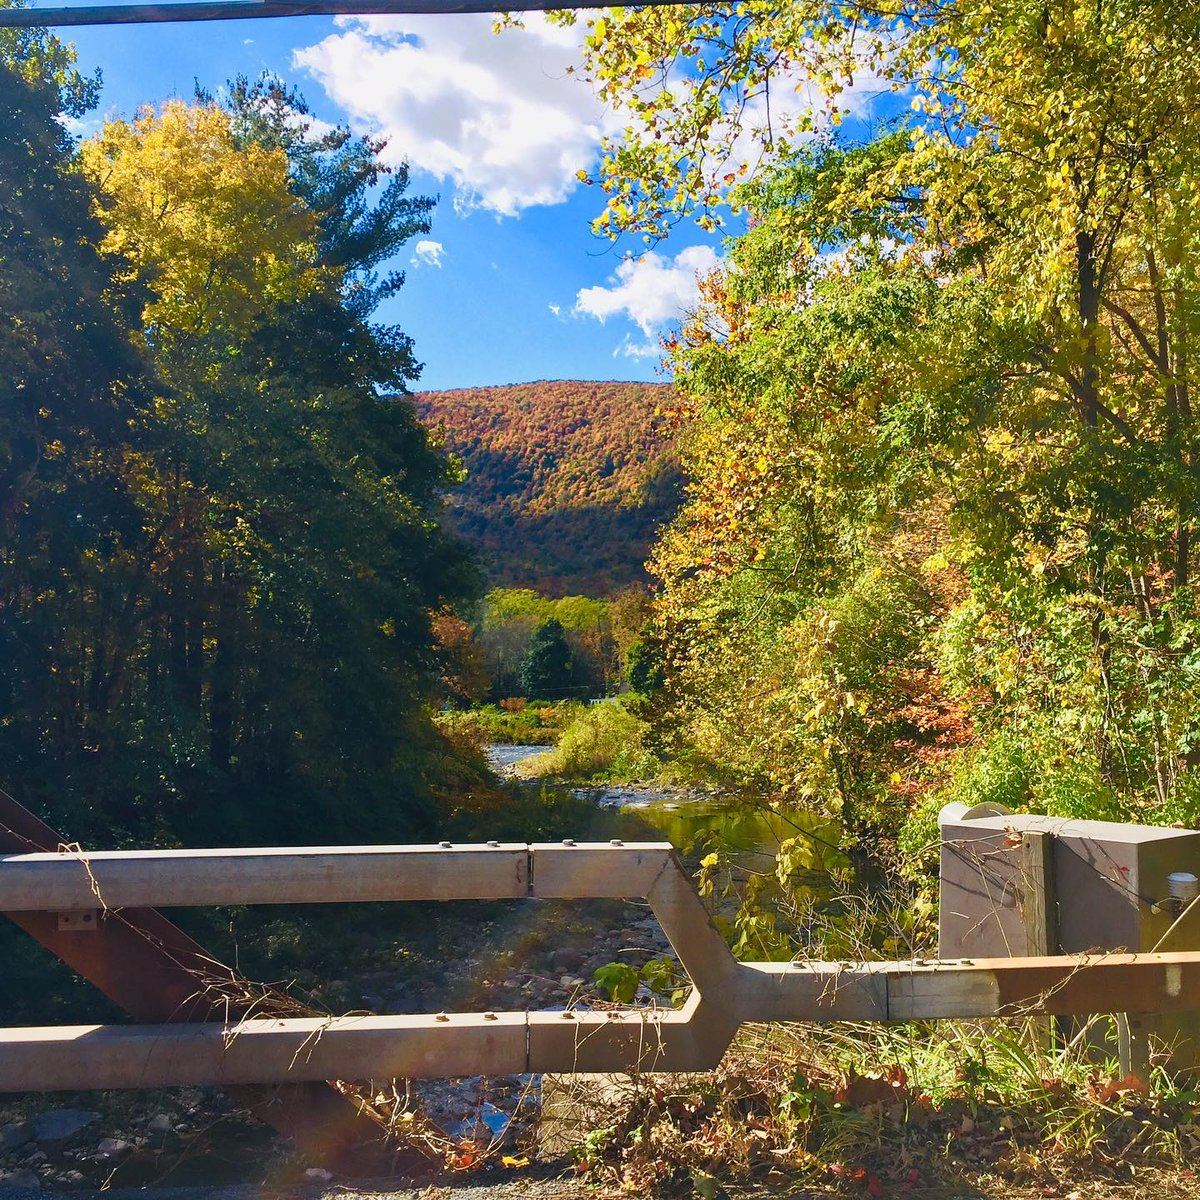 The Fall Colors are spectacular this year. The bouquets of fall colors are unforgettable. Come visit and enjoy the Season with us! #fallcolors #fall #fallfolliage #iheartny #iloveny #natureviews #landscapephotography #autumn #catskills #hudsonvalley #leafpeepers #PhoeniciaNY https://t.co/dhtzhhLUgE